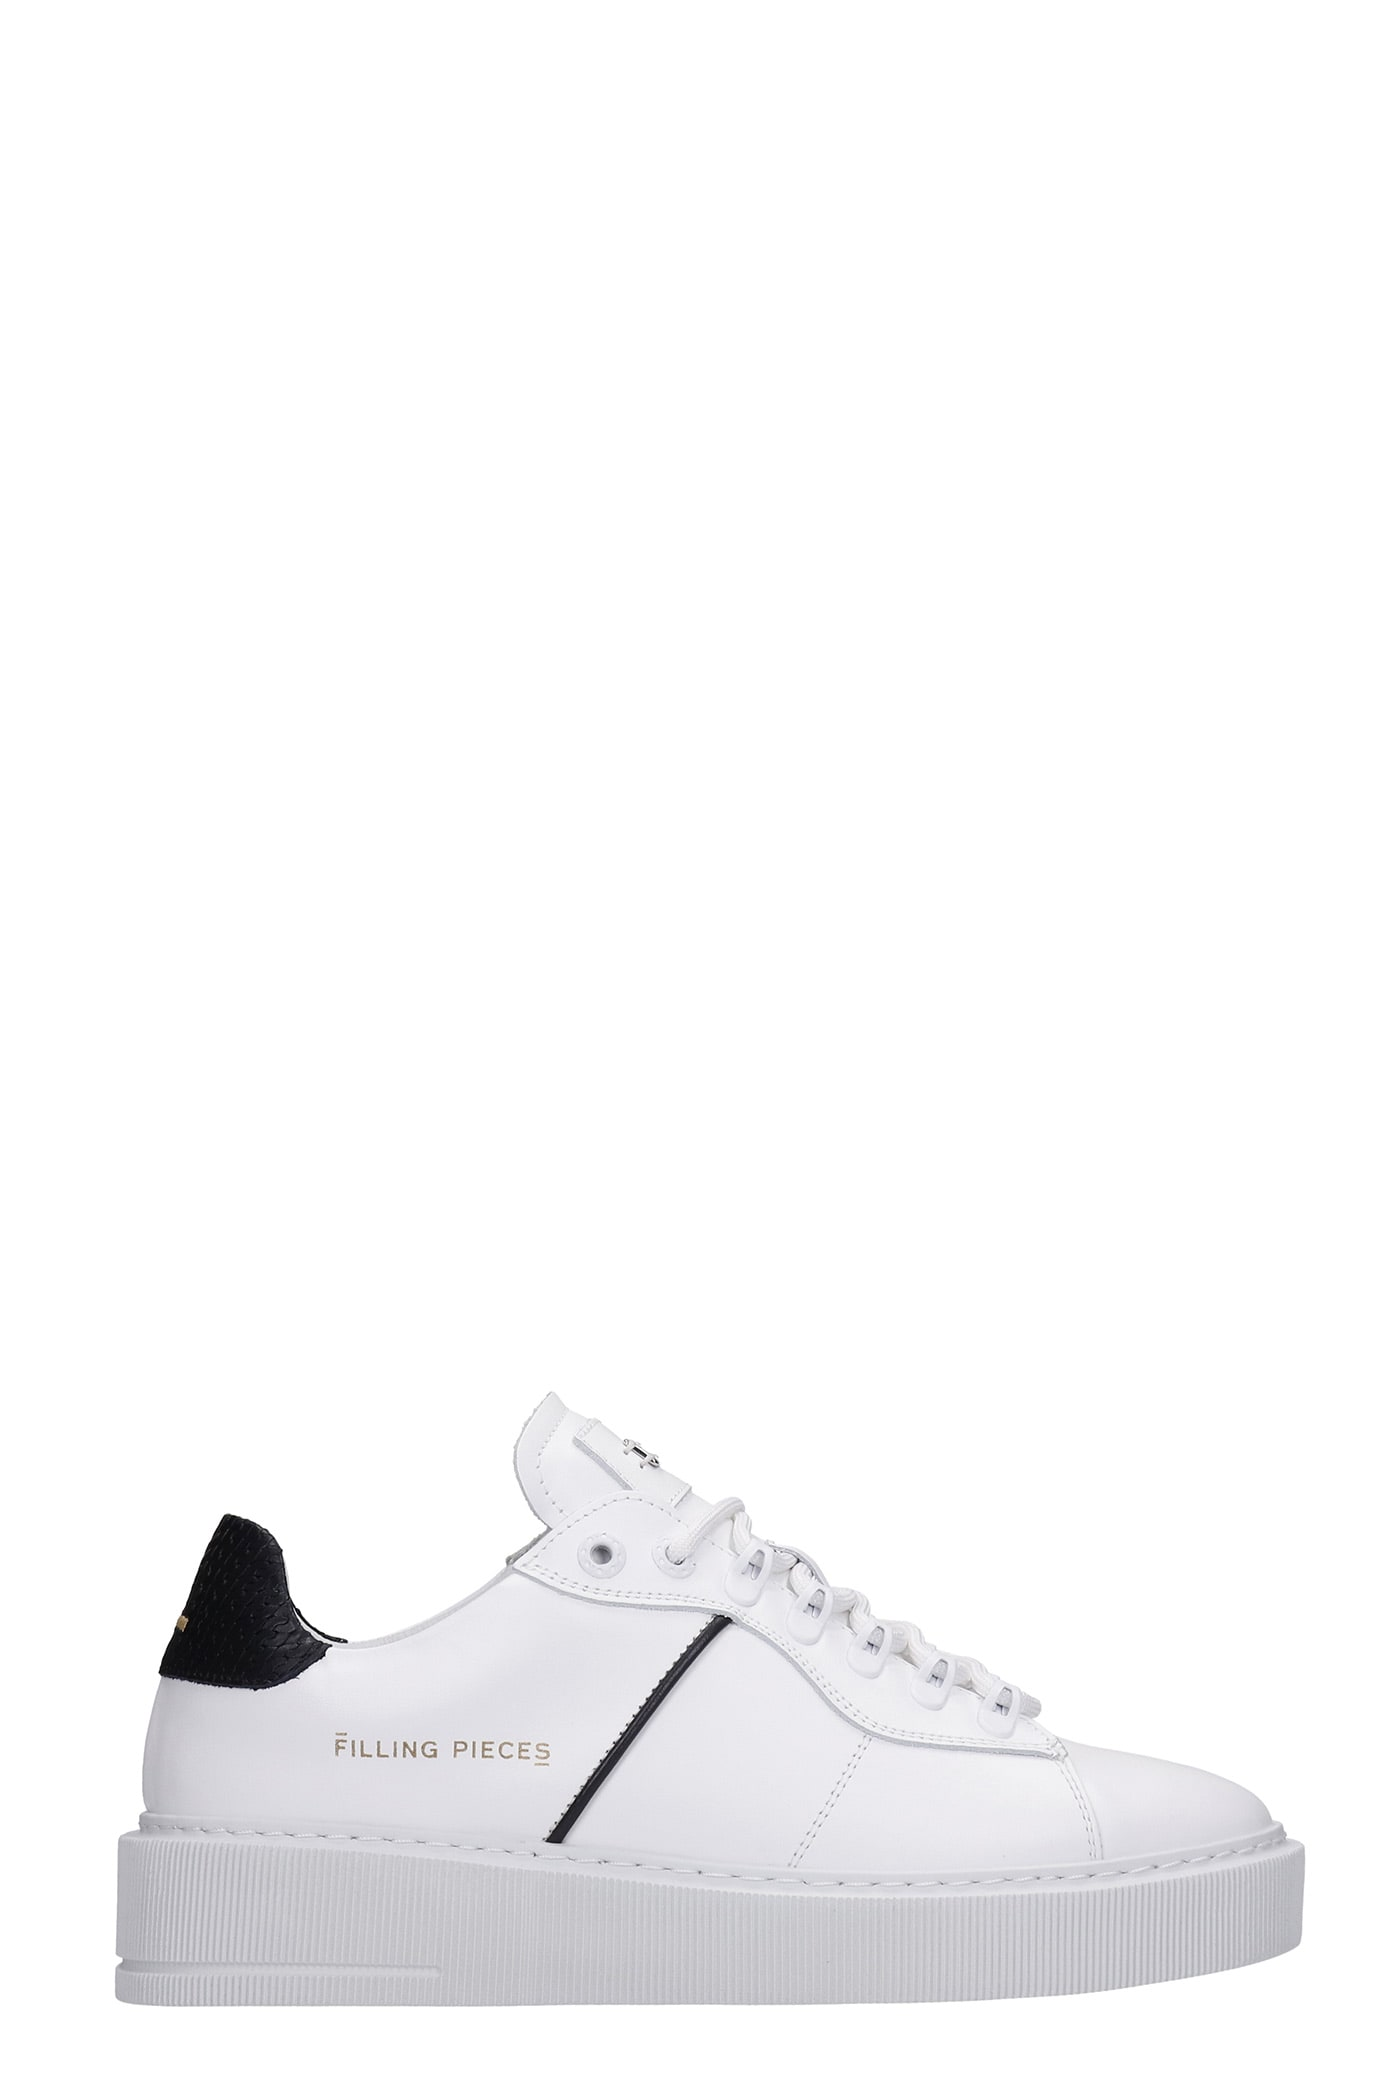 Court Gala Sneakers In White Leather